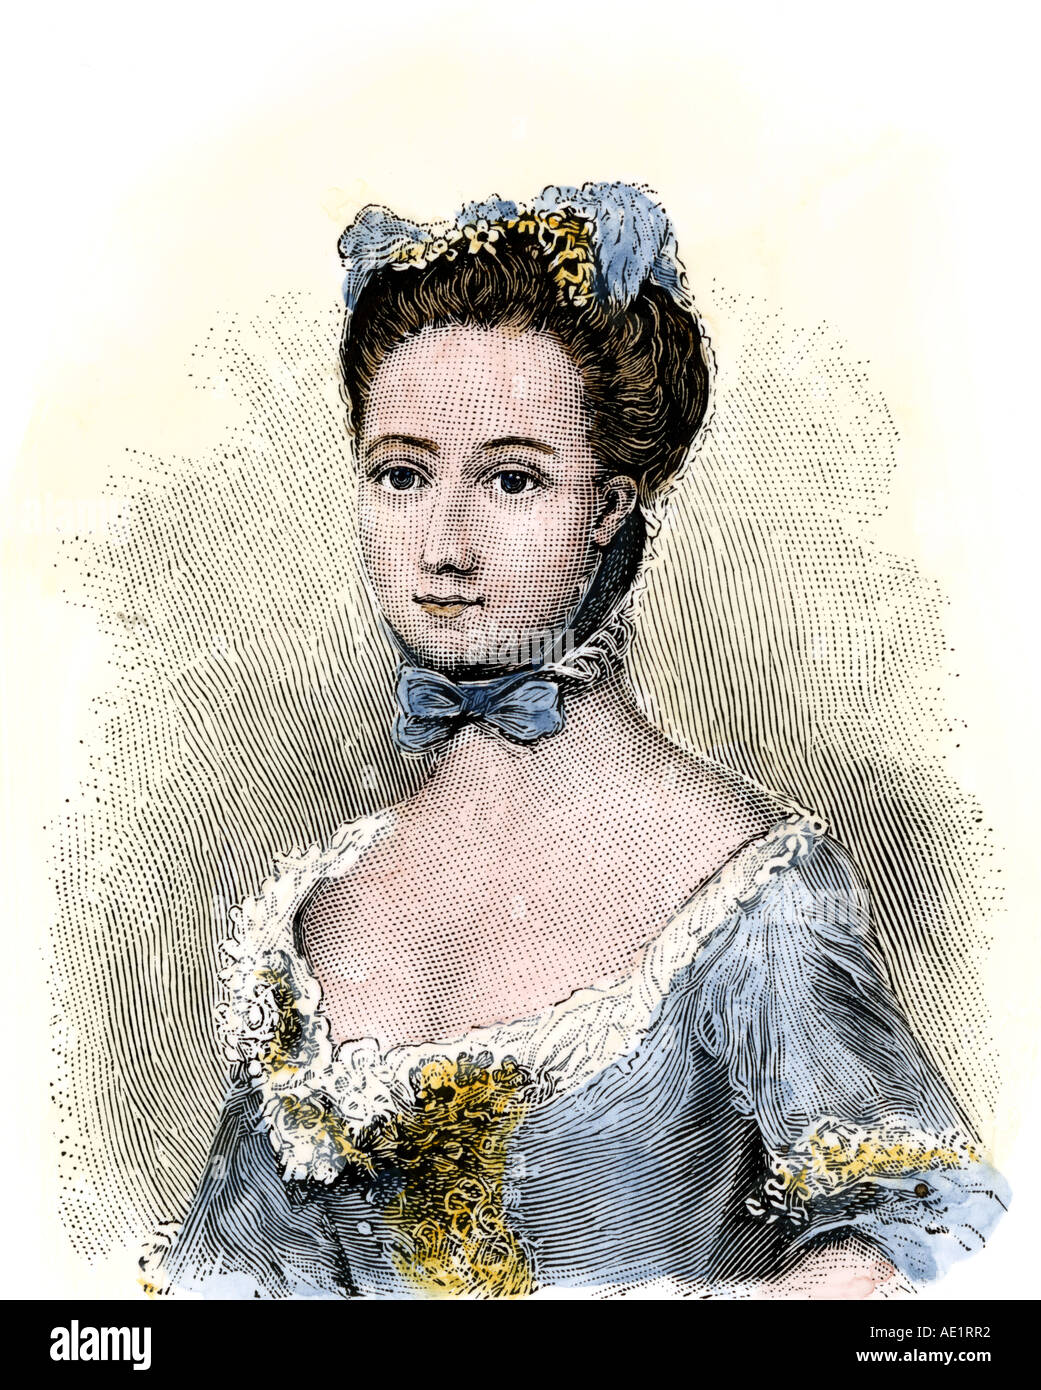 Baroness Fredericka von Riedesel wife of a Hessian officer in the American Revolution. Hand-colored woodcut - Stock Image